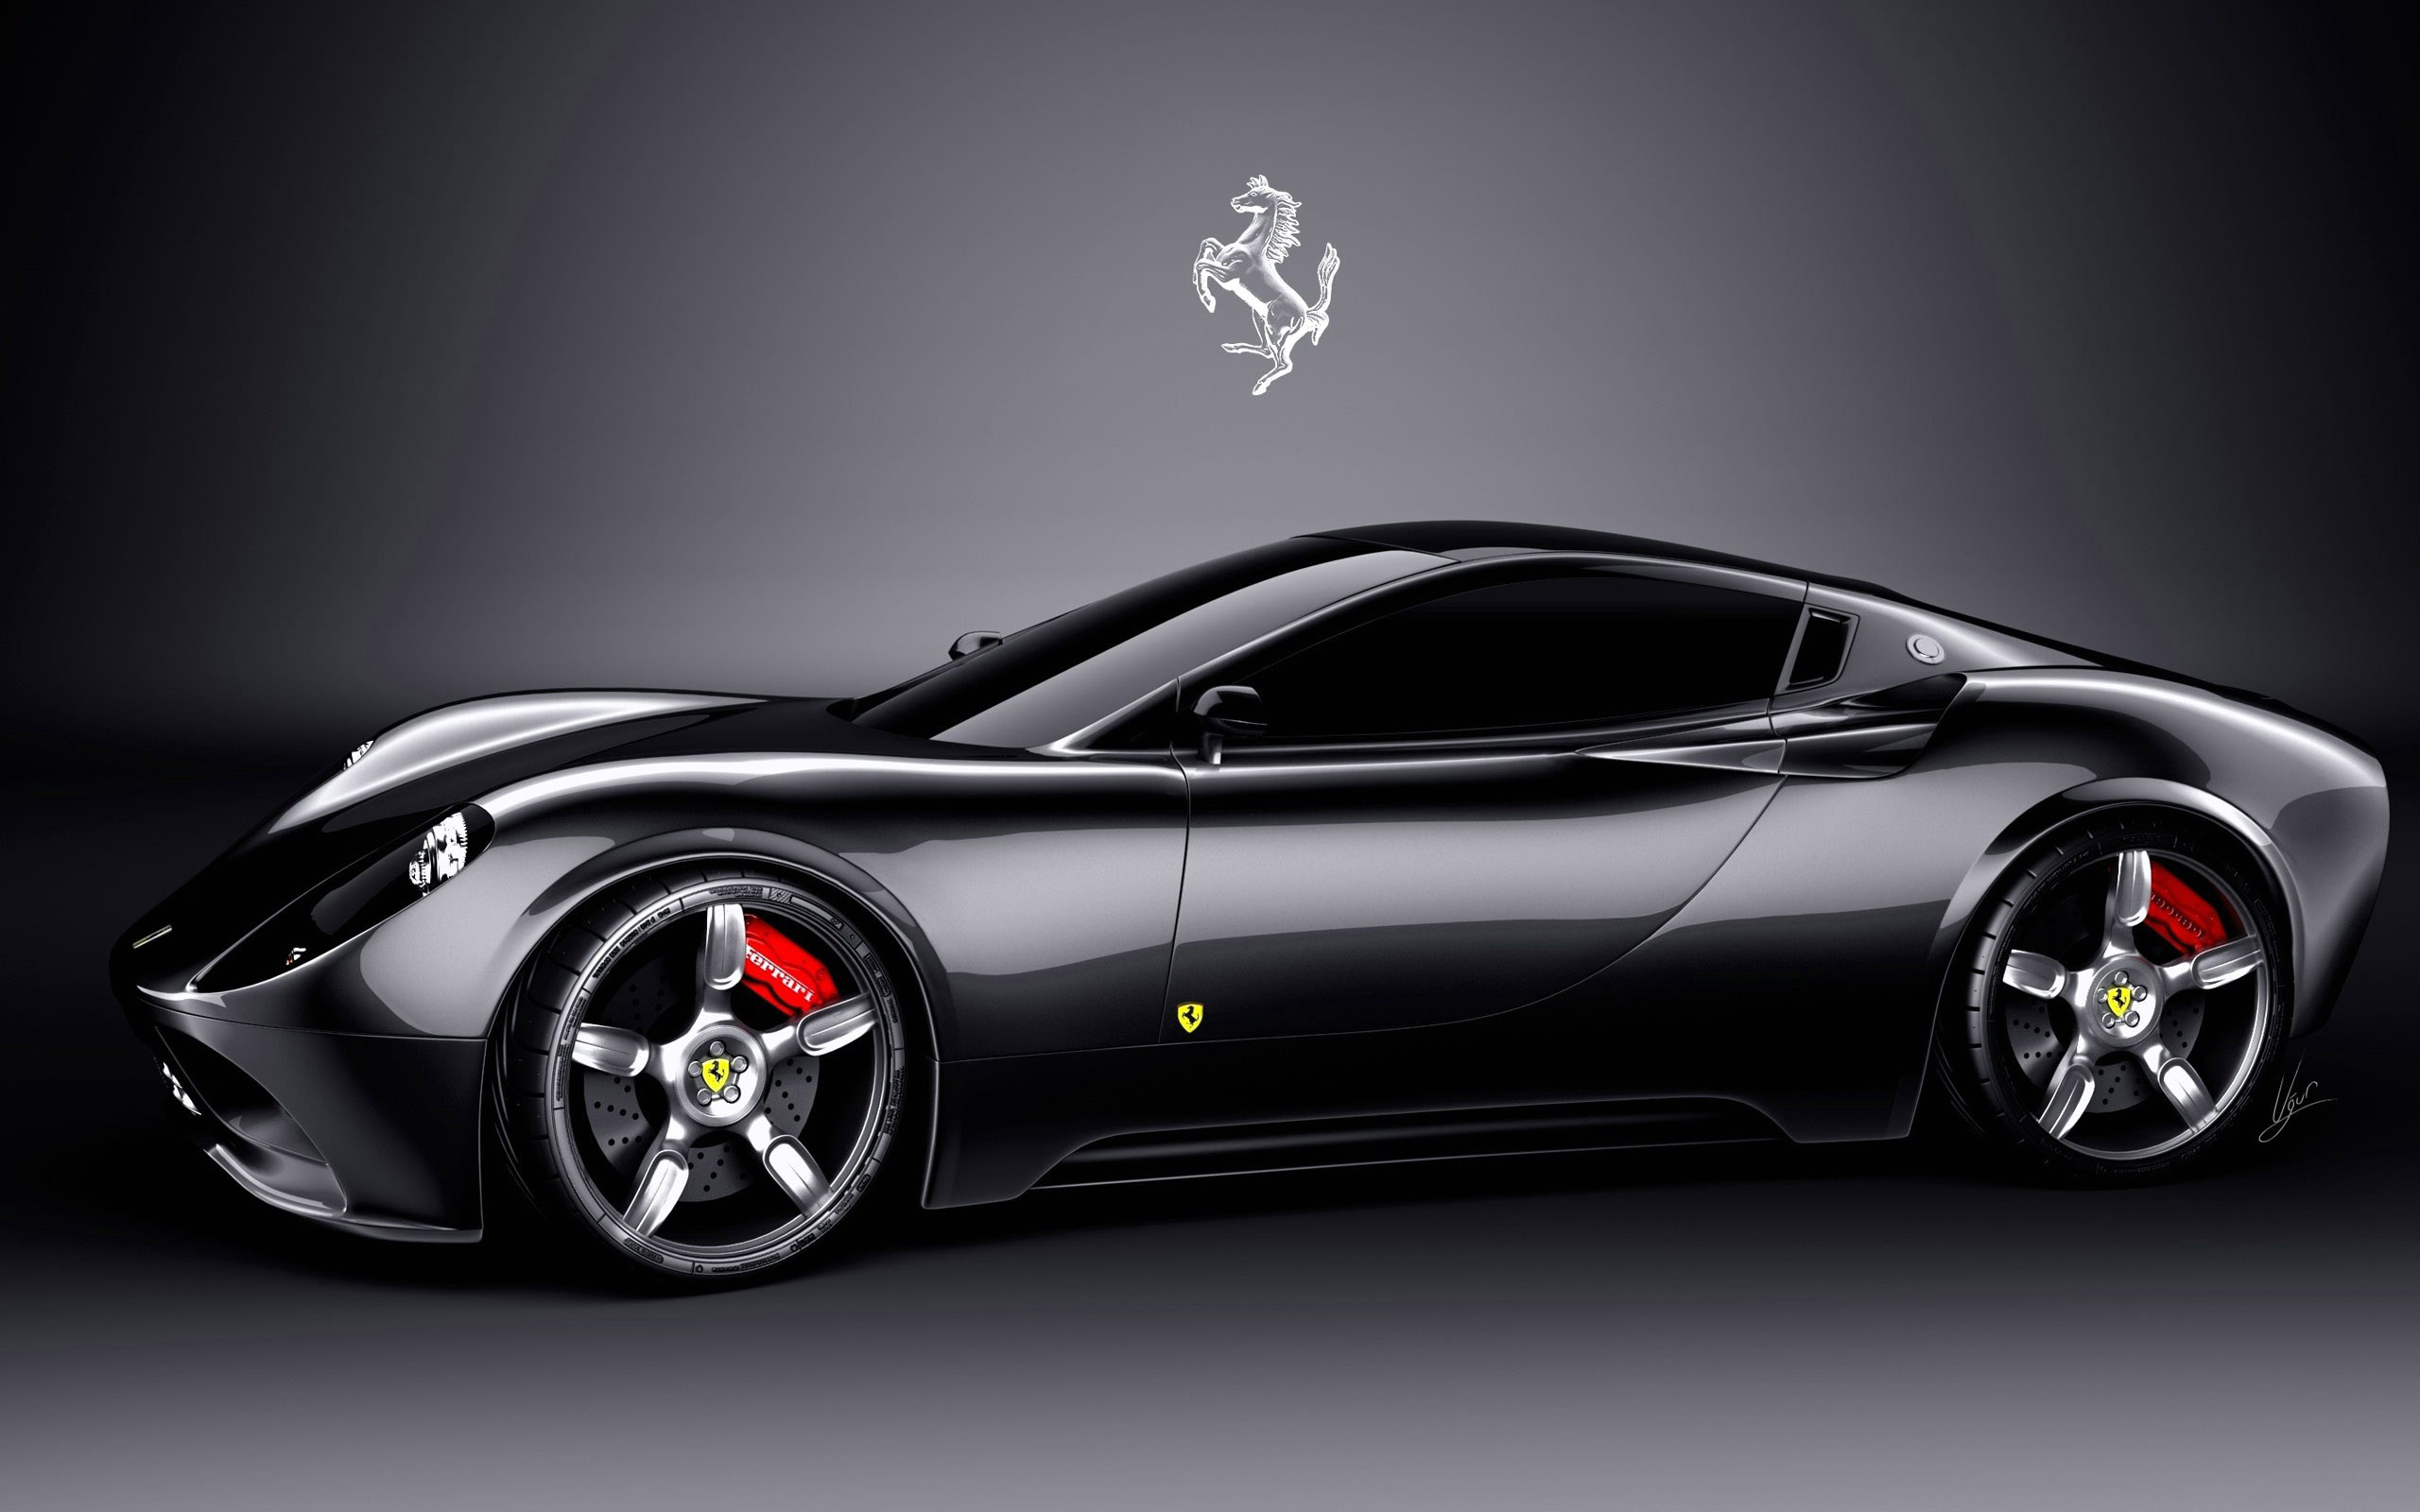 Wallpaper Mobil Sport Black: Black Sport Cars Wallpapers 4 Desktop Wallpaper